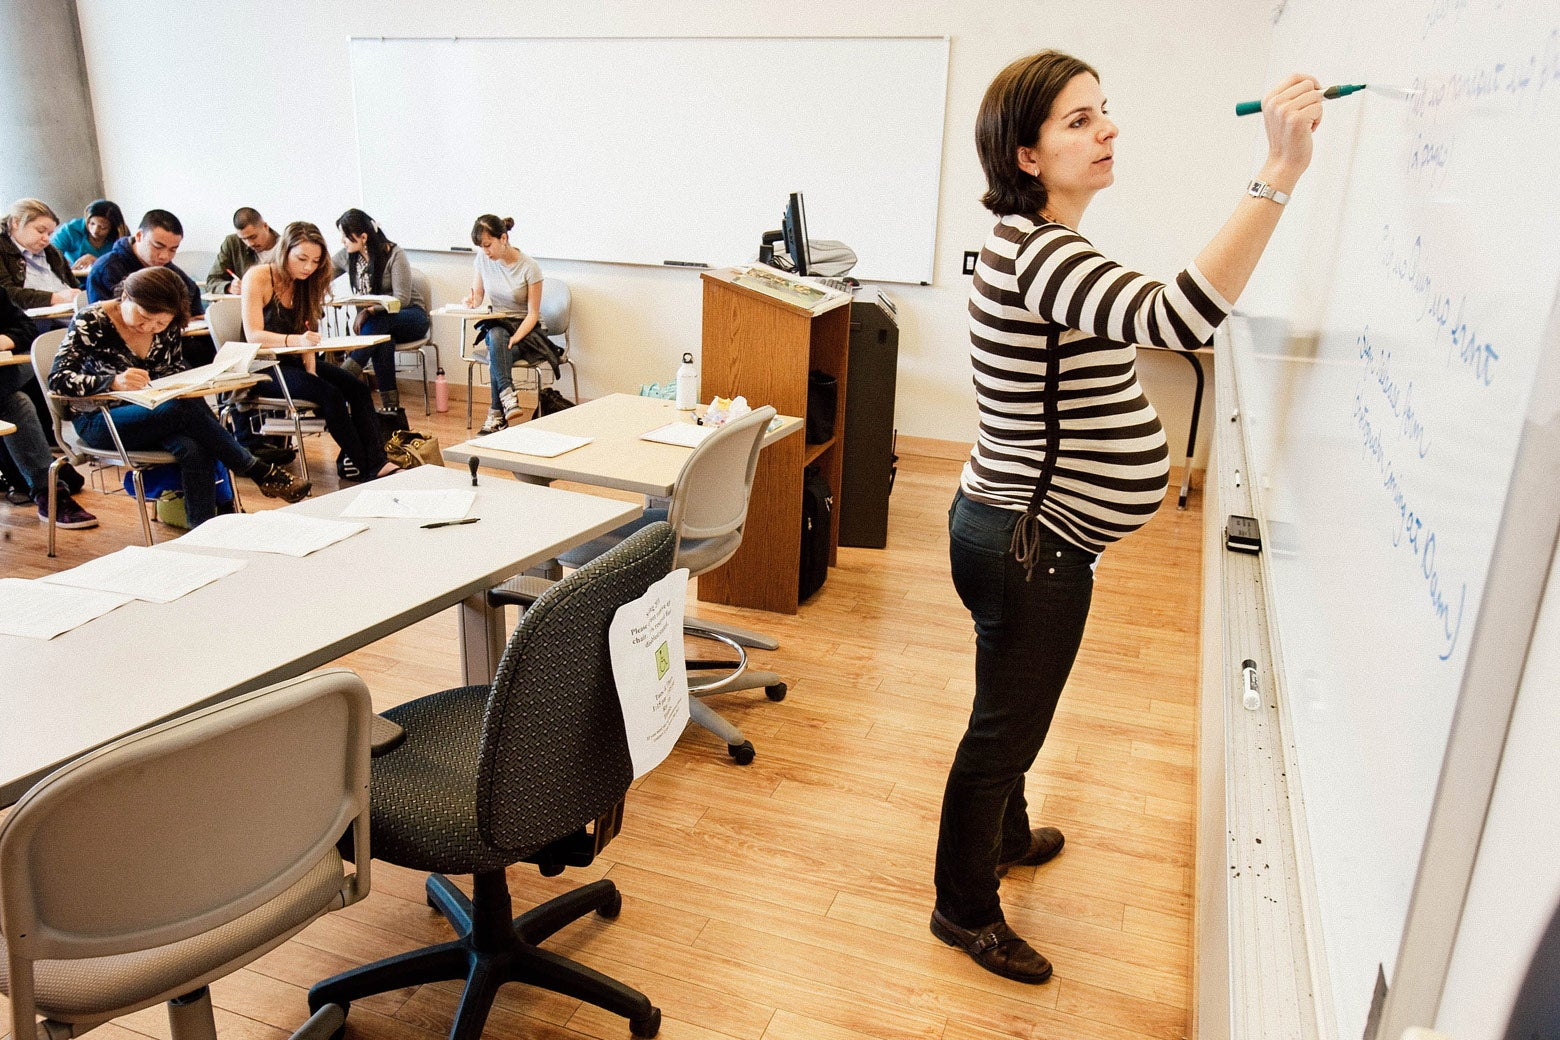 Rebecca writes on a whiteboard in front of a classroom of students.